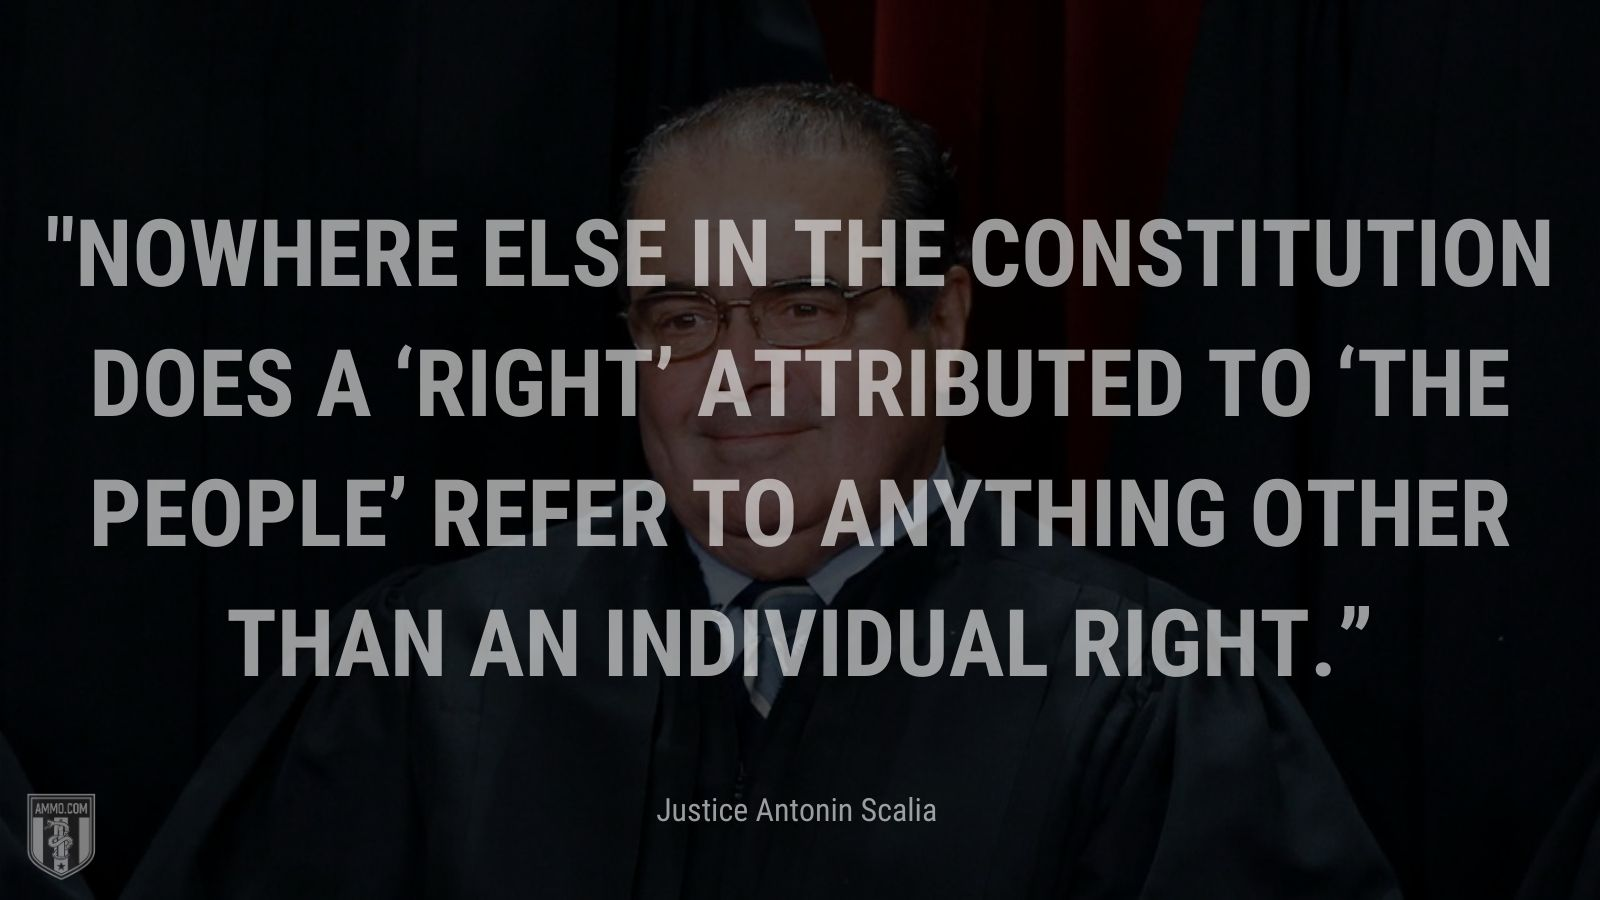 """""""Nowhere else in the Constitution does a 'right' attributed to 'the people' refer to anything other than an individual right."""" - Justice Antonin Scalia"""